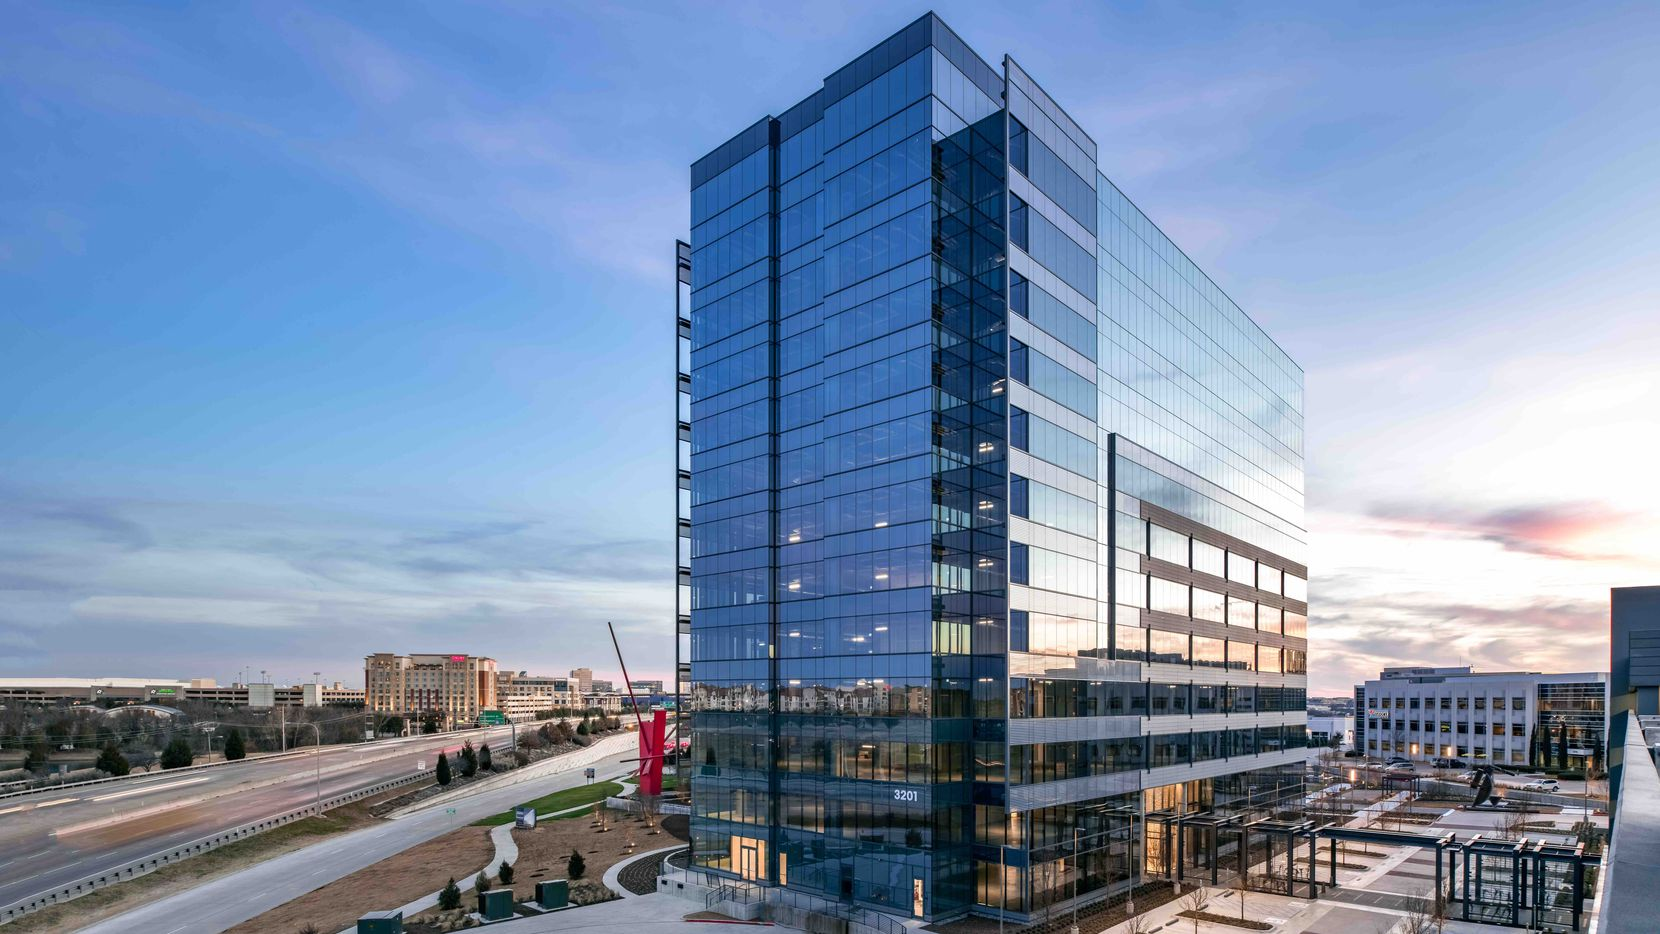 Mente Group has relocated to the 3201 Dallas Parkway tower in Hall Park.